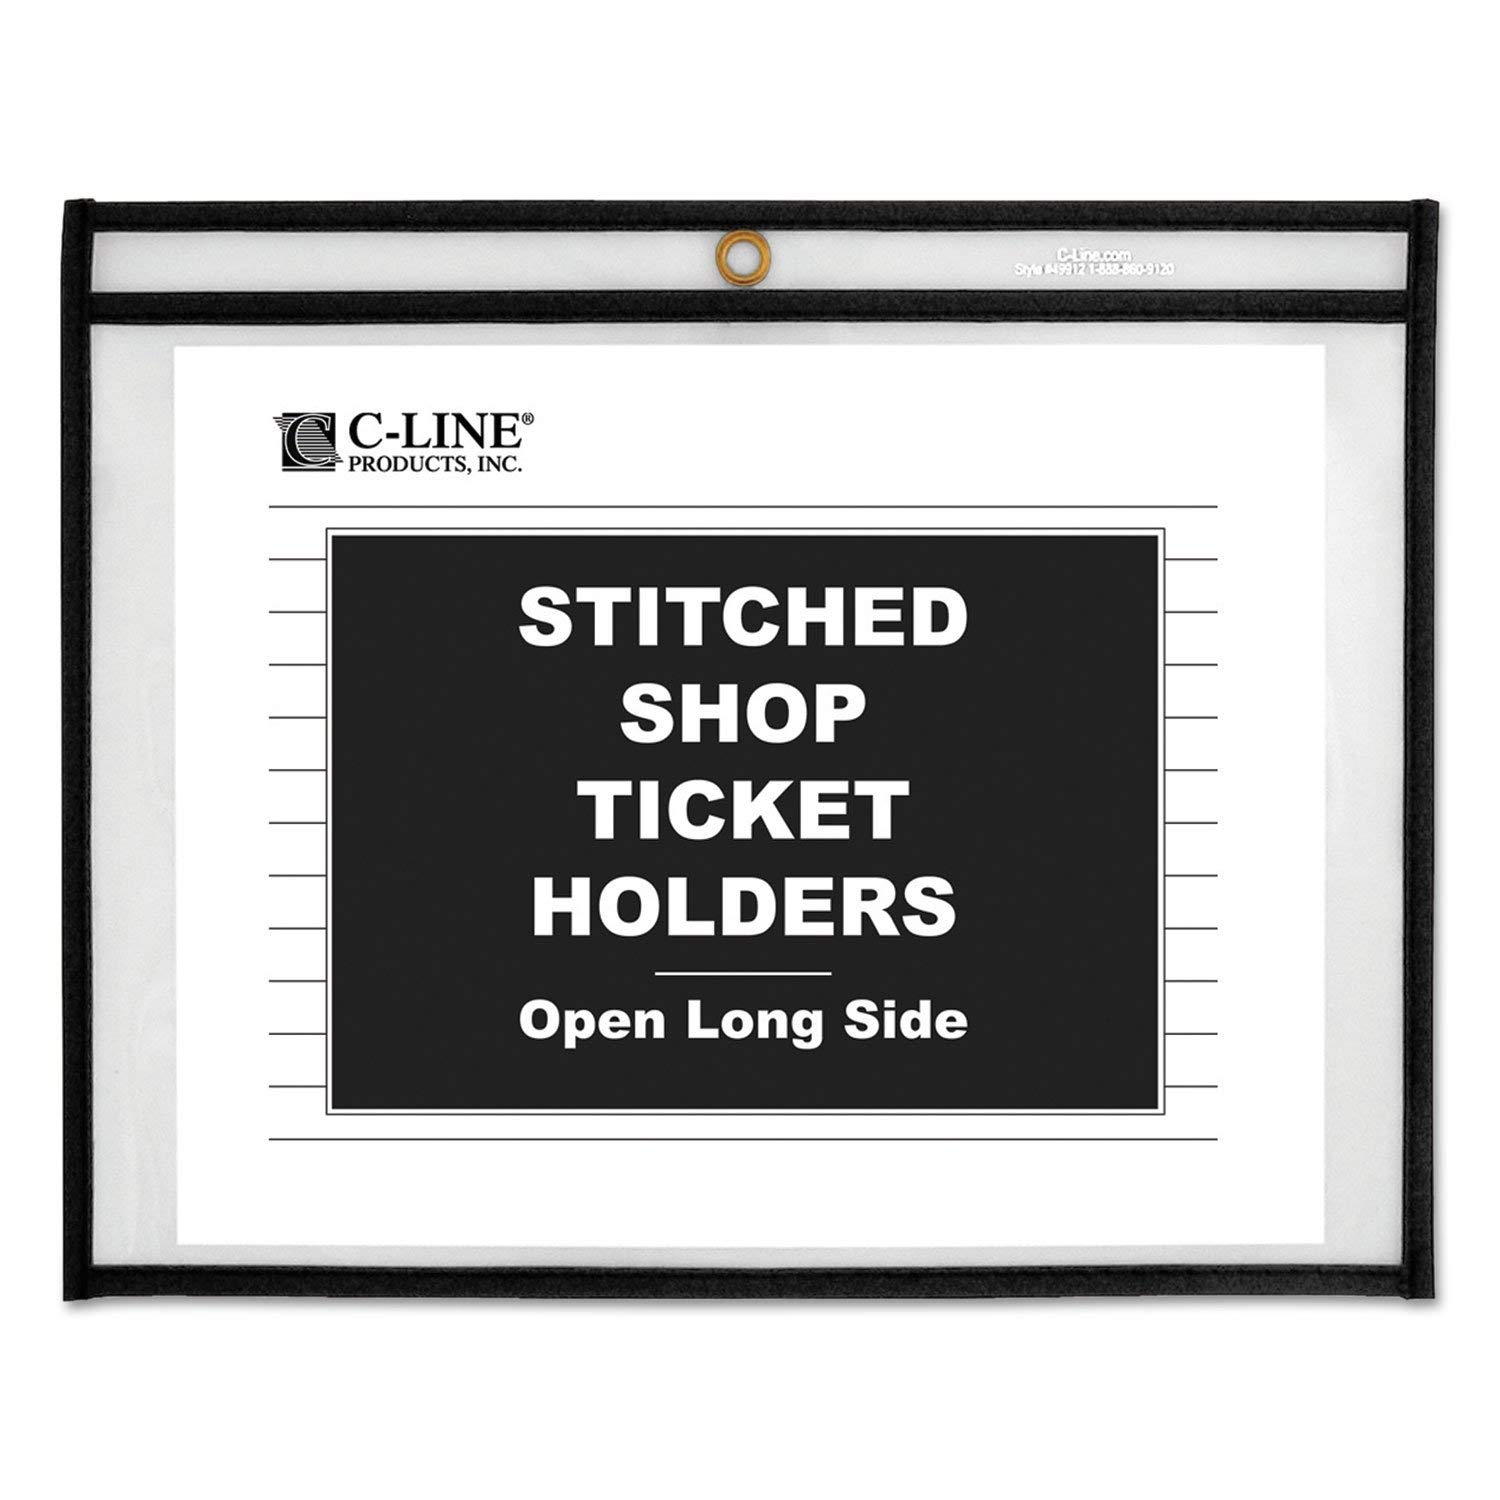 C-Line Shop Ticket Holders, Stitched, Sides Clear, 50 inch, 11 x 8 1/2, 25/BX